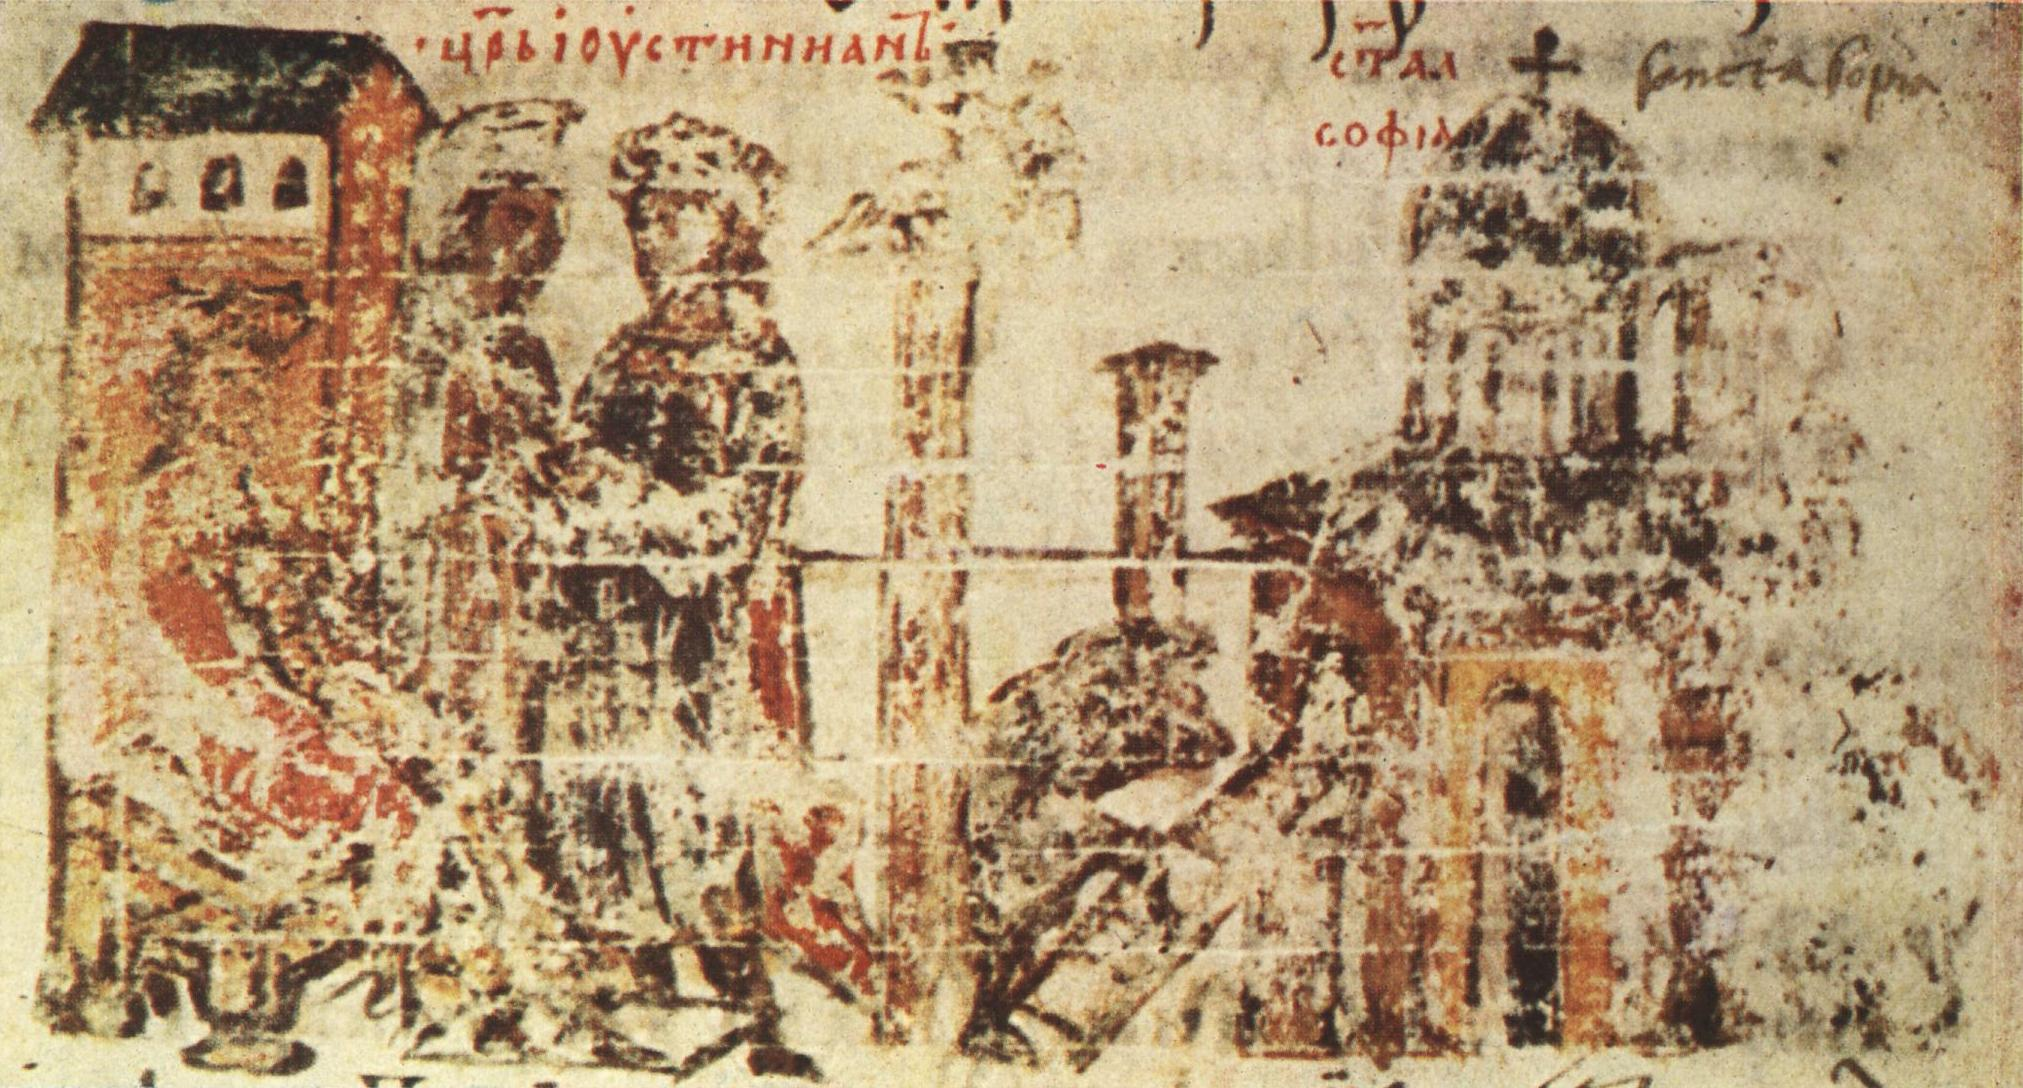 Miniature 38 from the Constantine Manasses Chronicle, 14 century: Construction of Hagia Sophia during the reign of emperor Justinian.